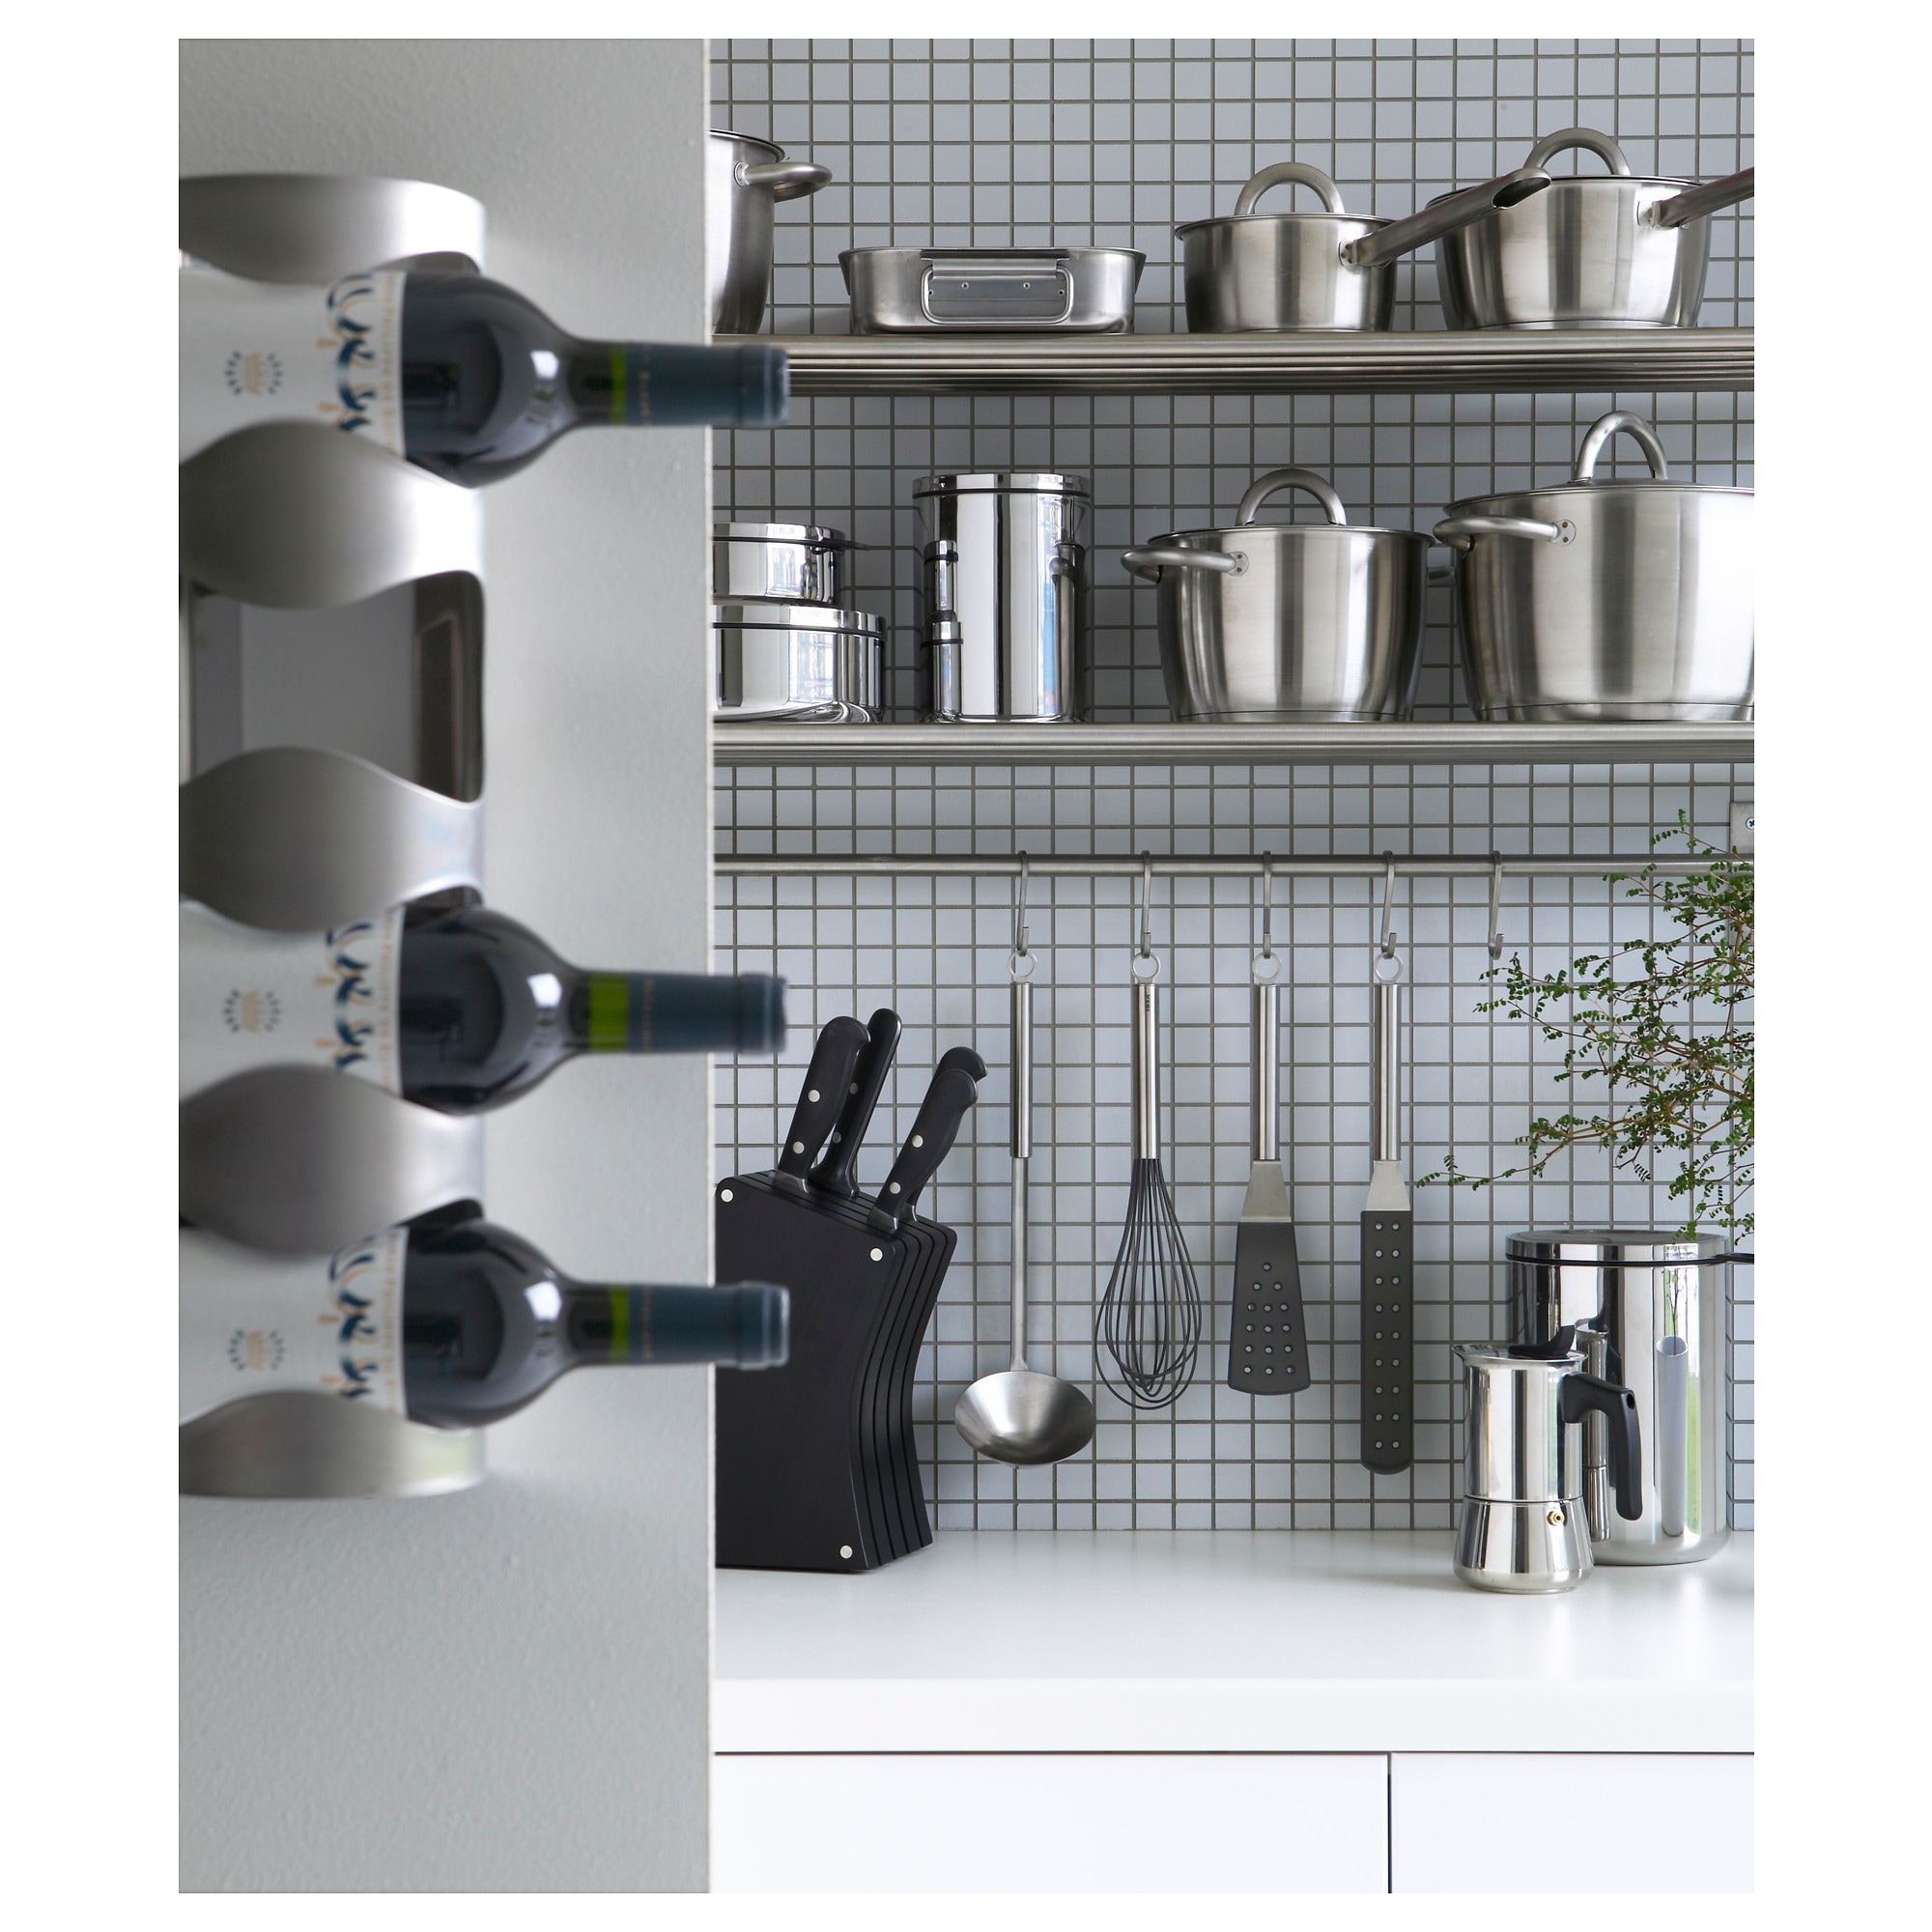 vurm bottle wine rack  ikea -